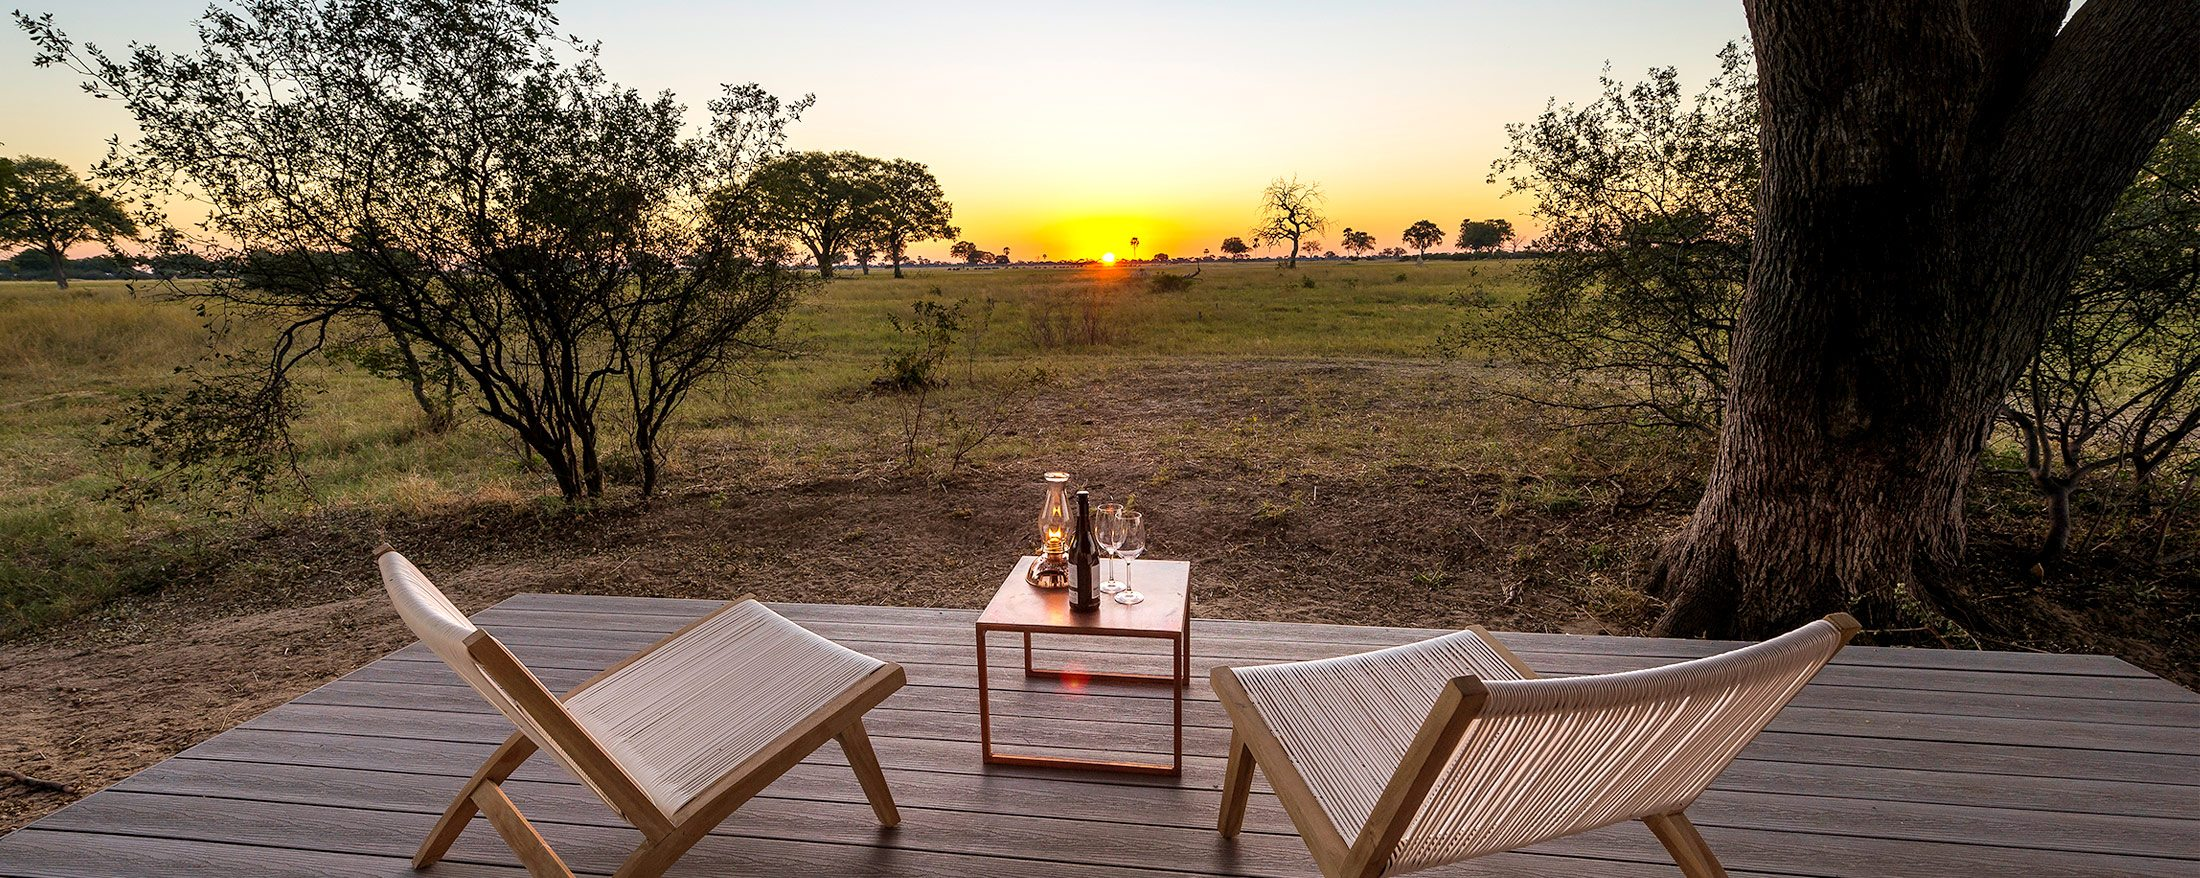 Enjoy the African sunset in all its glory from your tented suite's deck at Linkwasha Camp.